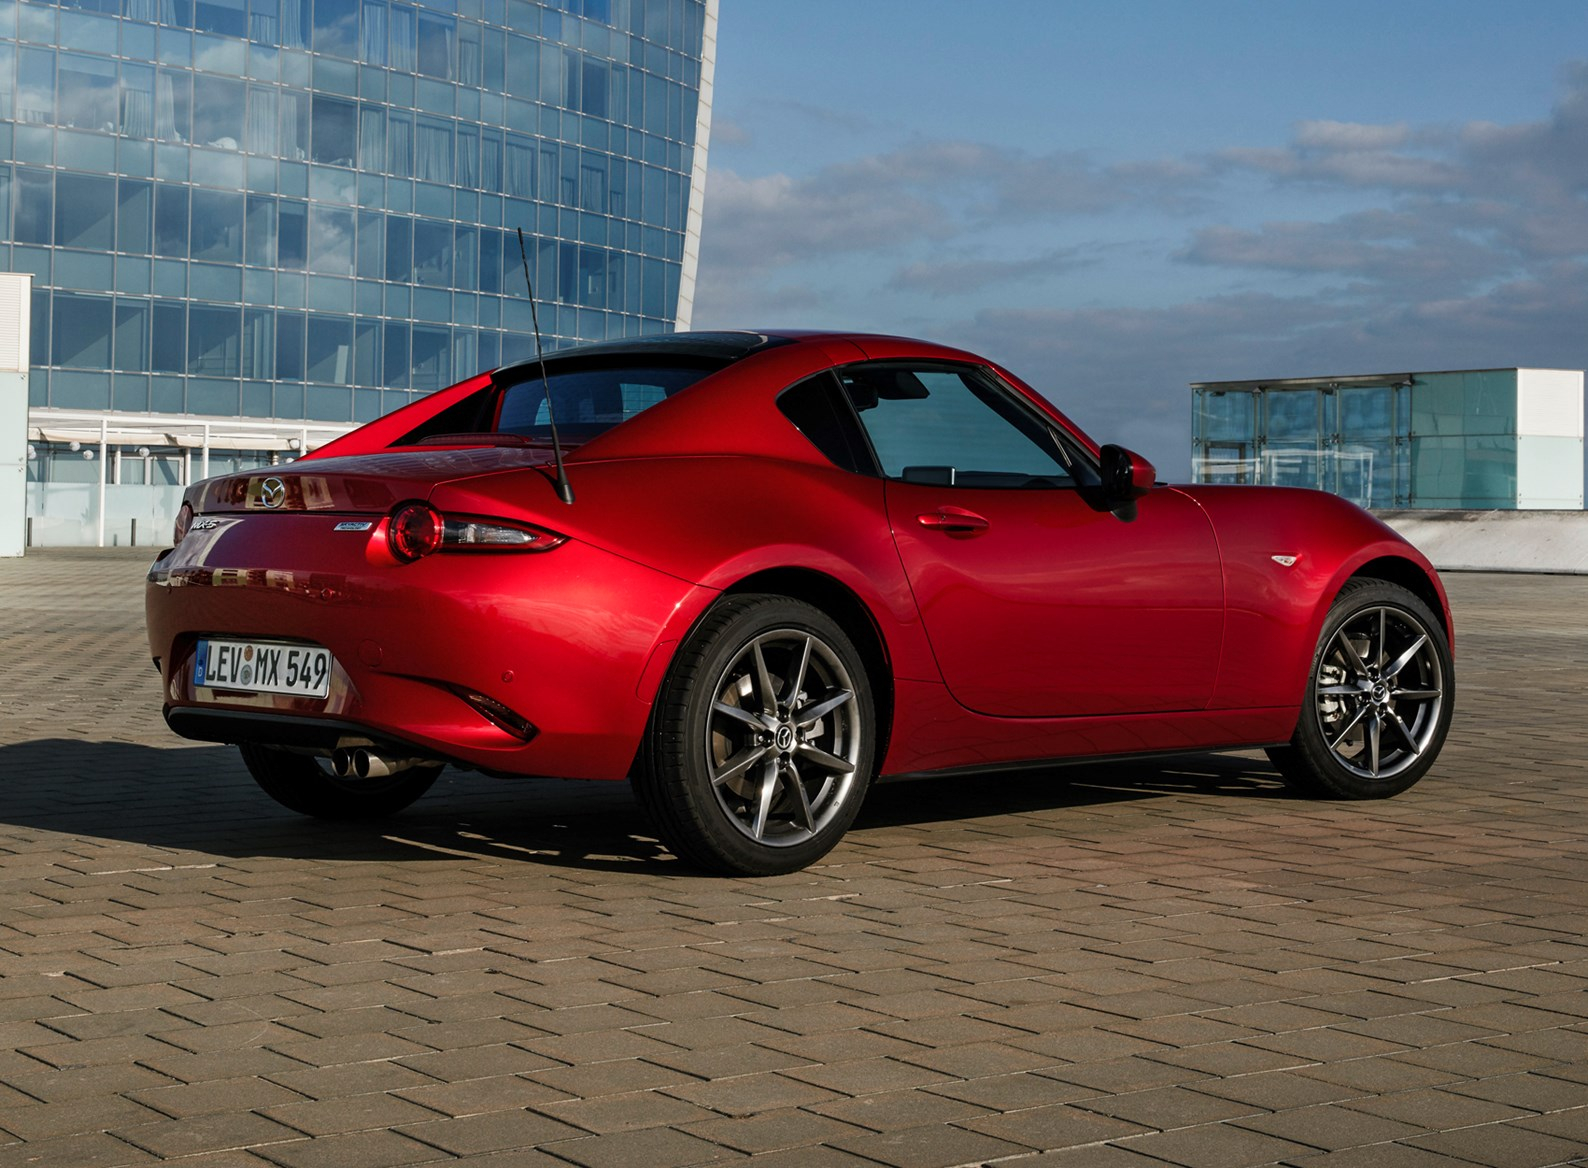 2017 Mx 5 Rf >> Mazda MX-5 RF (2017 - ) Photos | Parkers